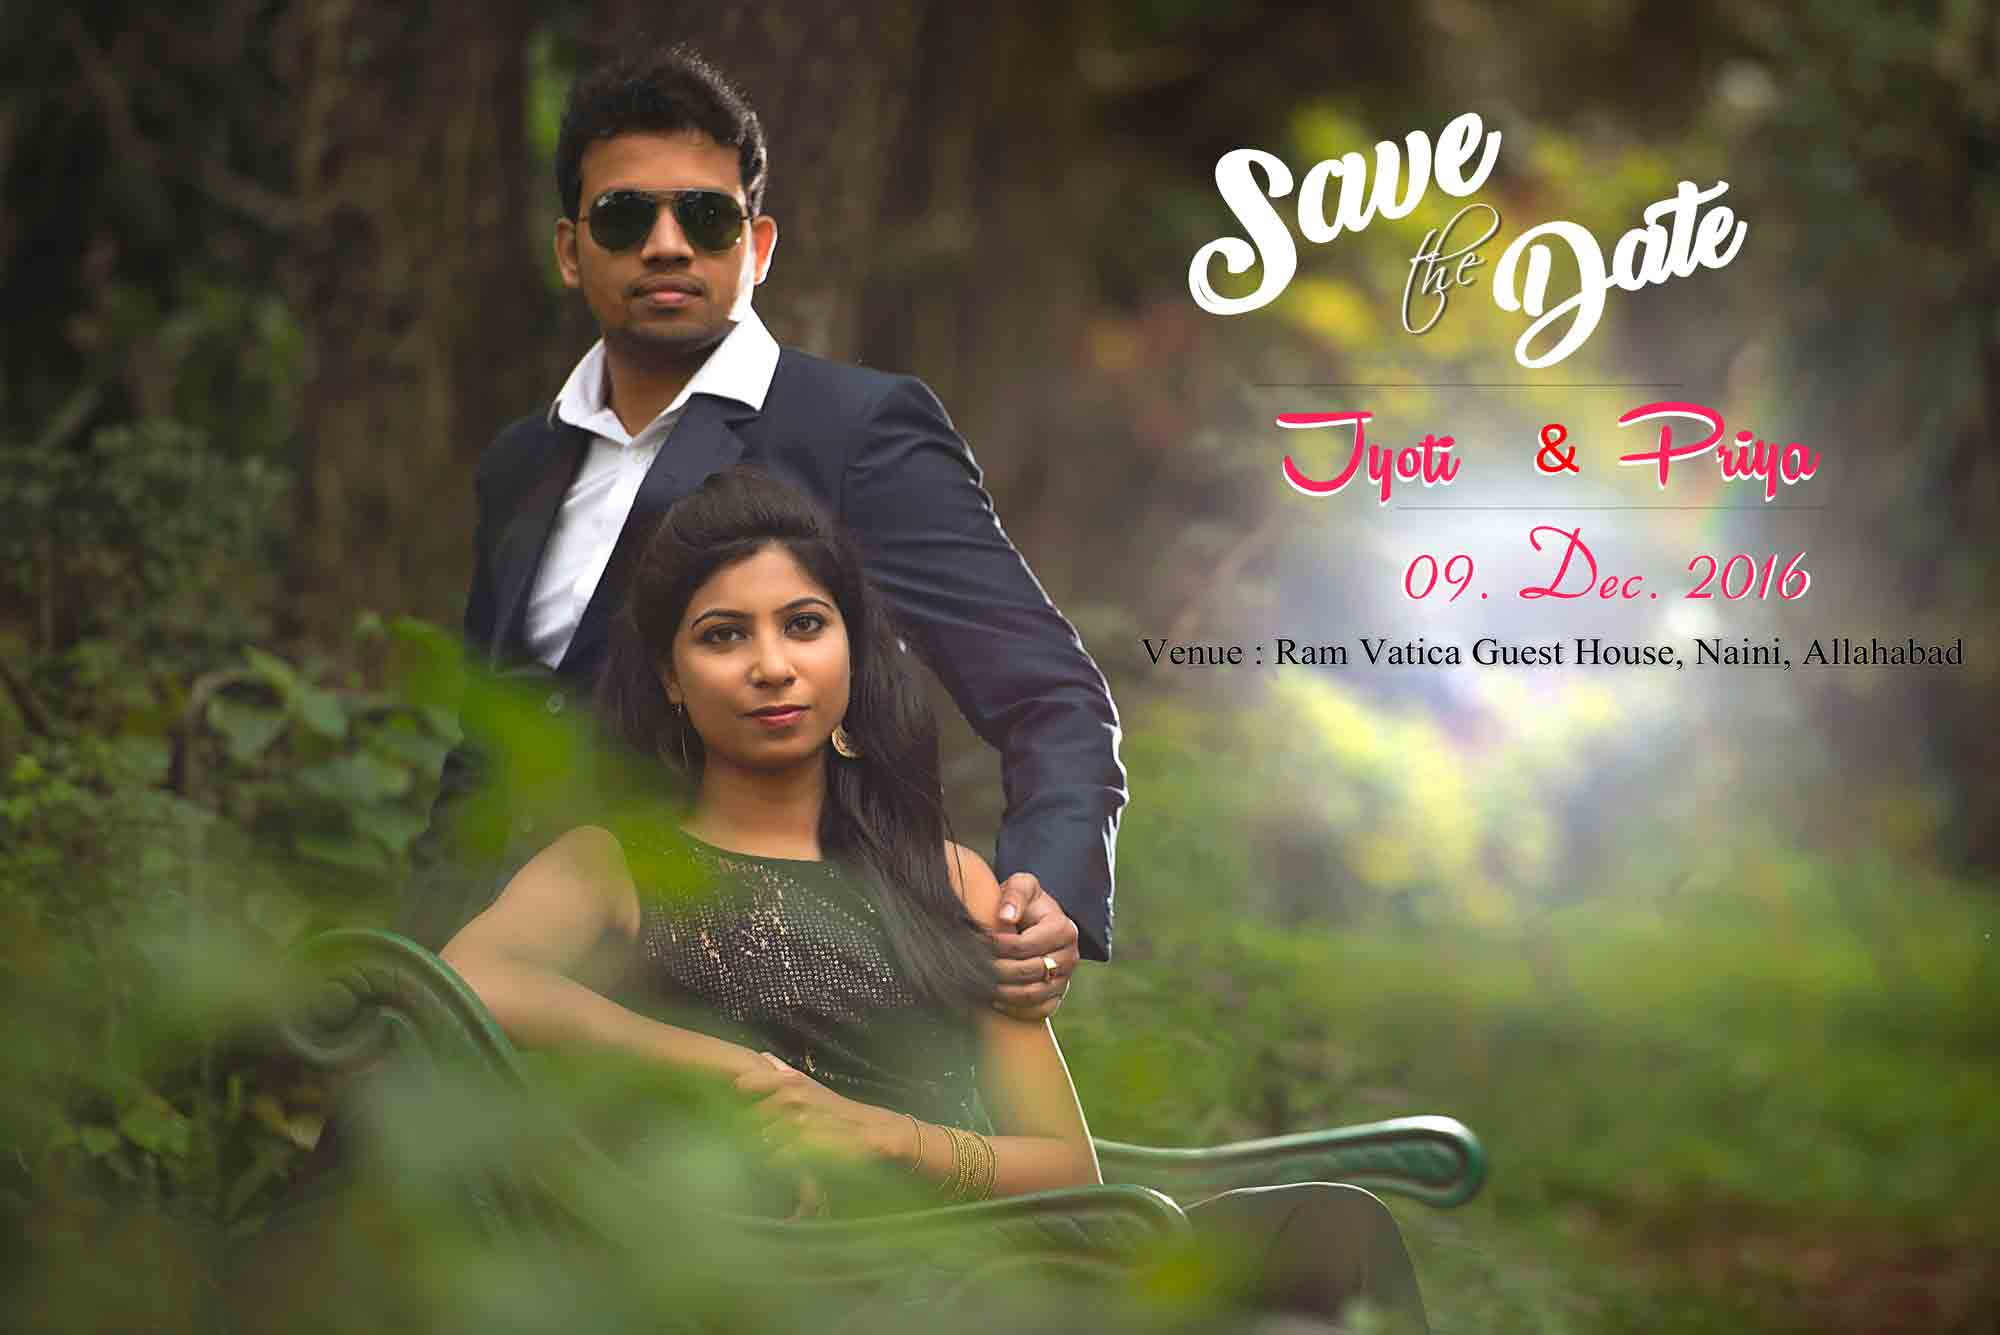 Save The Date Poster